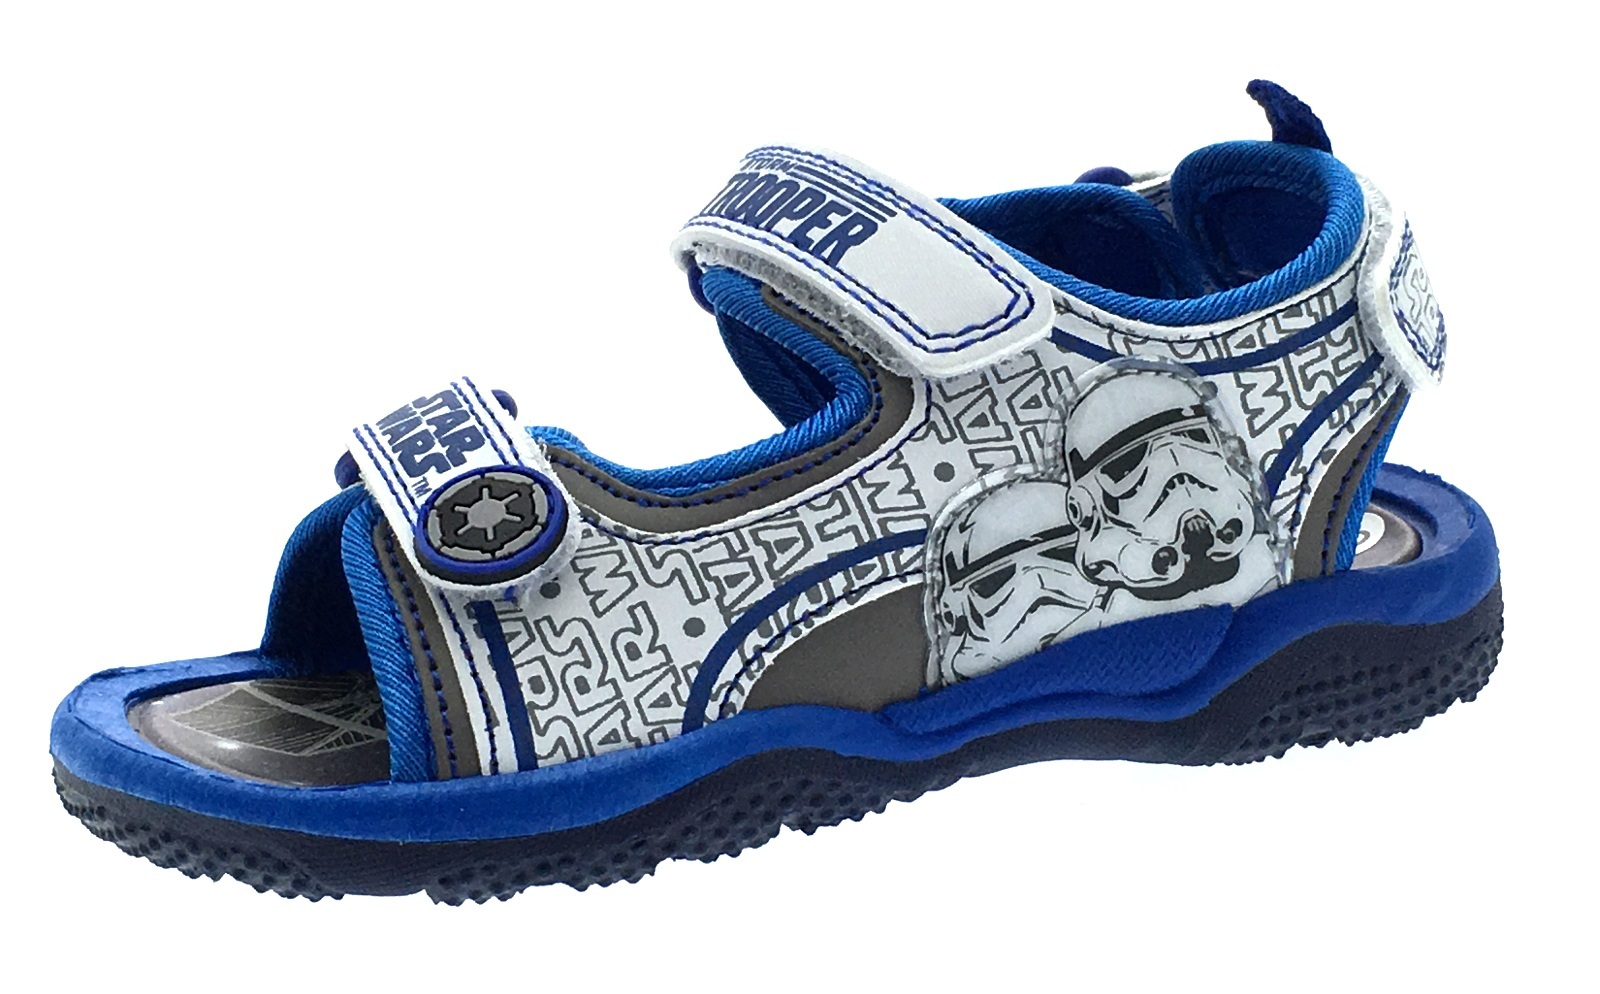 Sandals Boys Wars Straps Fully Disney Trooper Adjustable Storm Star TZnnFOWq4